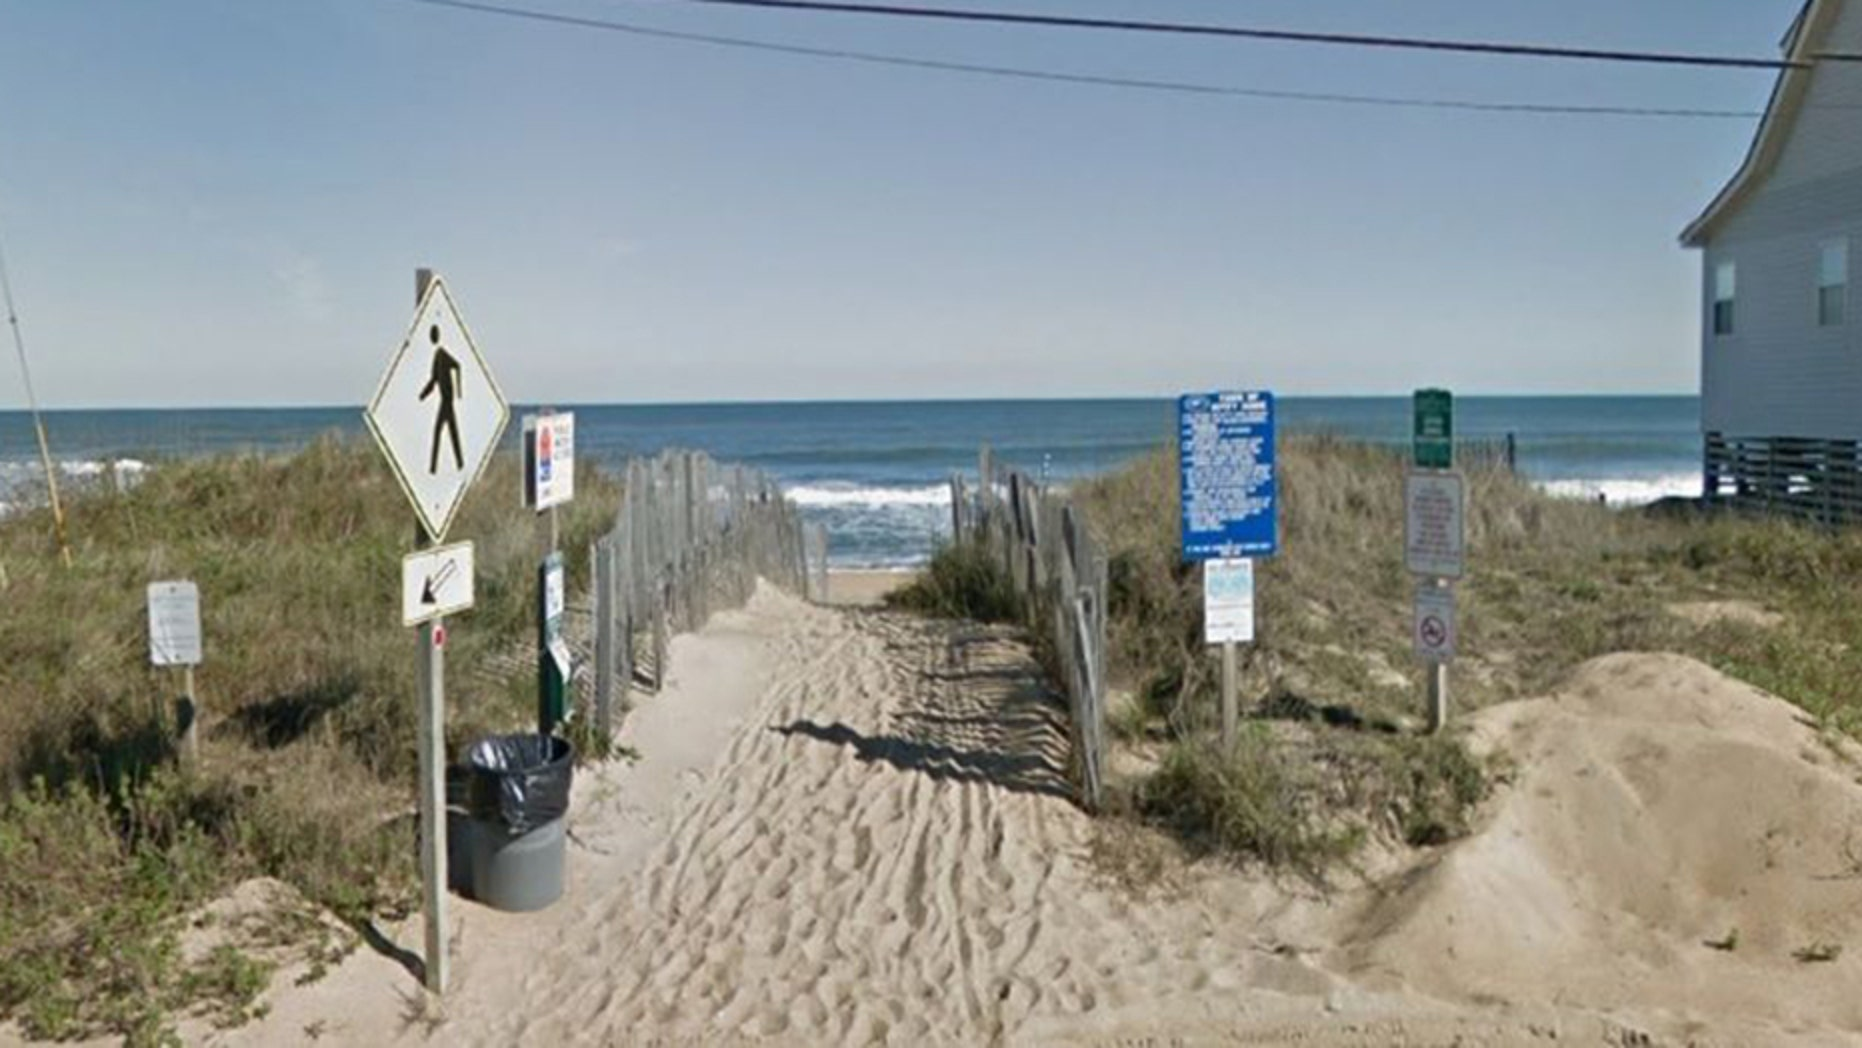 A 4-year-old boy was swept out to sea by a wave last week at a beach in Kitty Hawk, North Carolina.